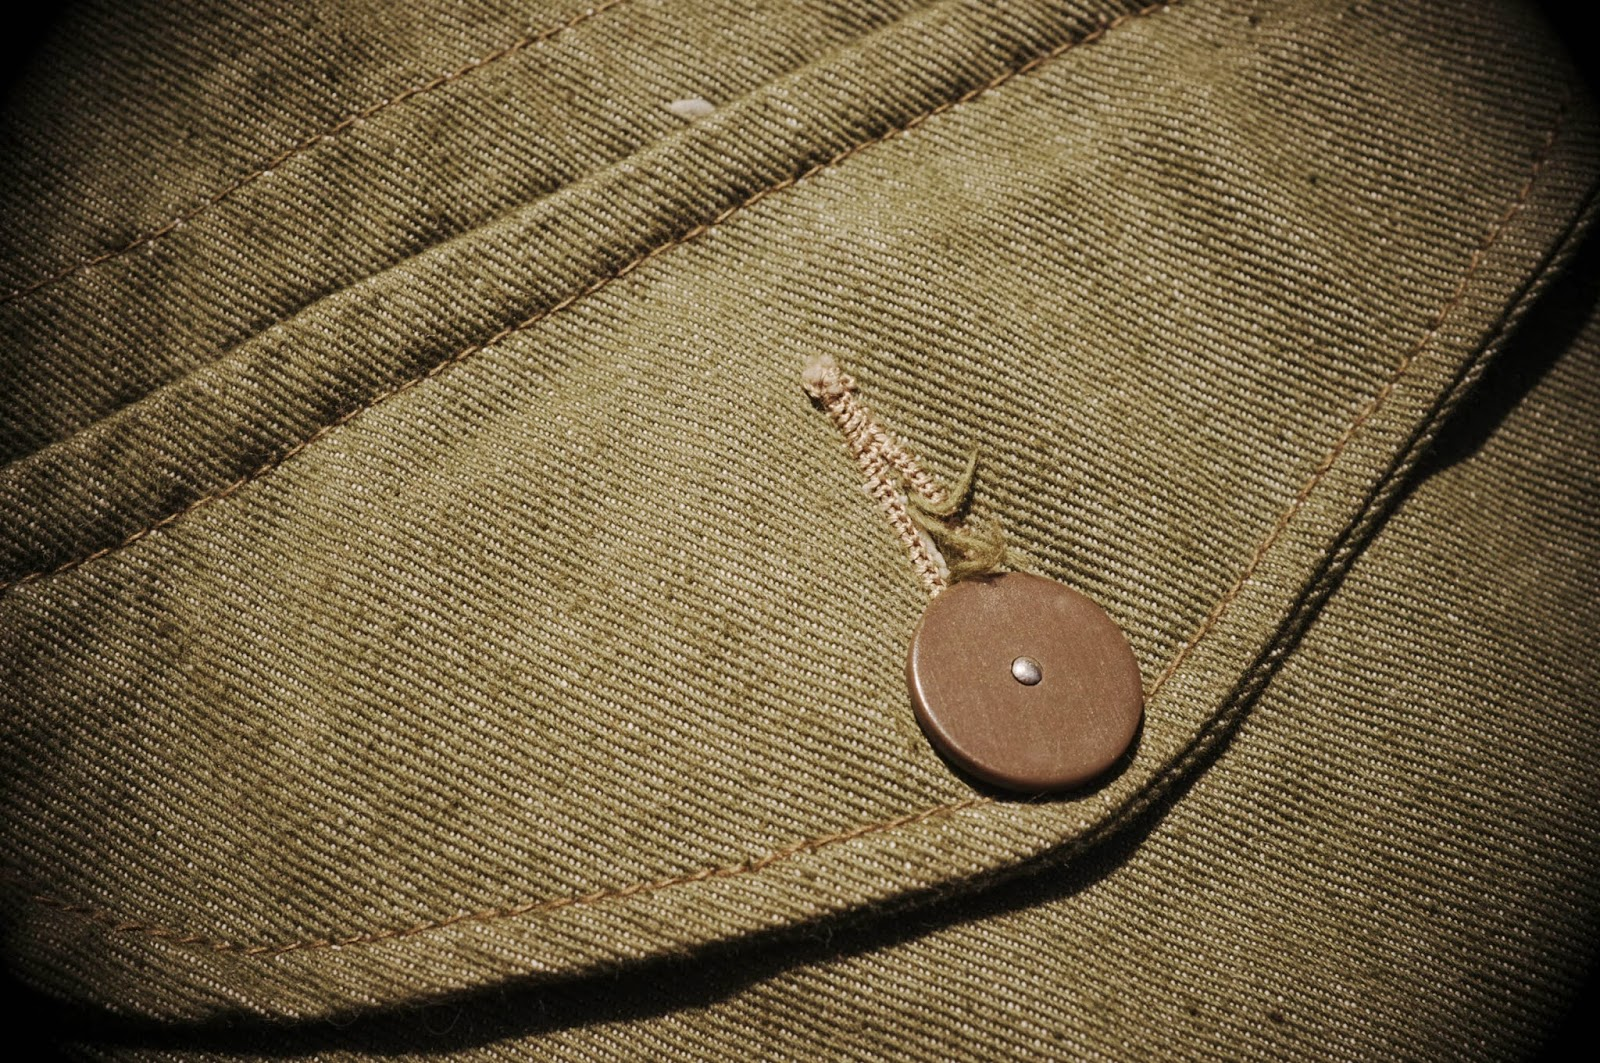 British Army Denim Battledress